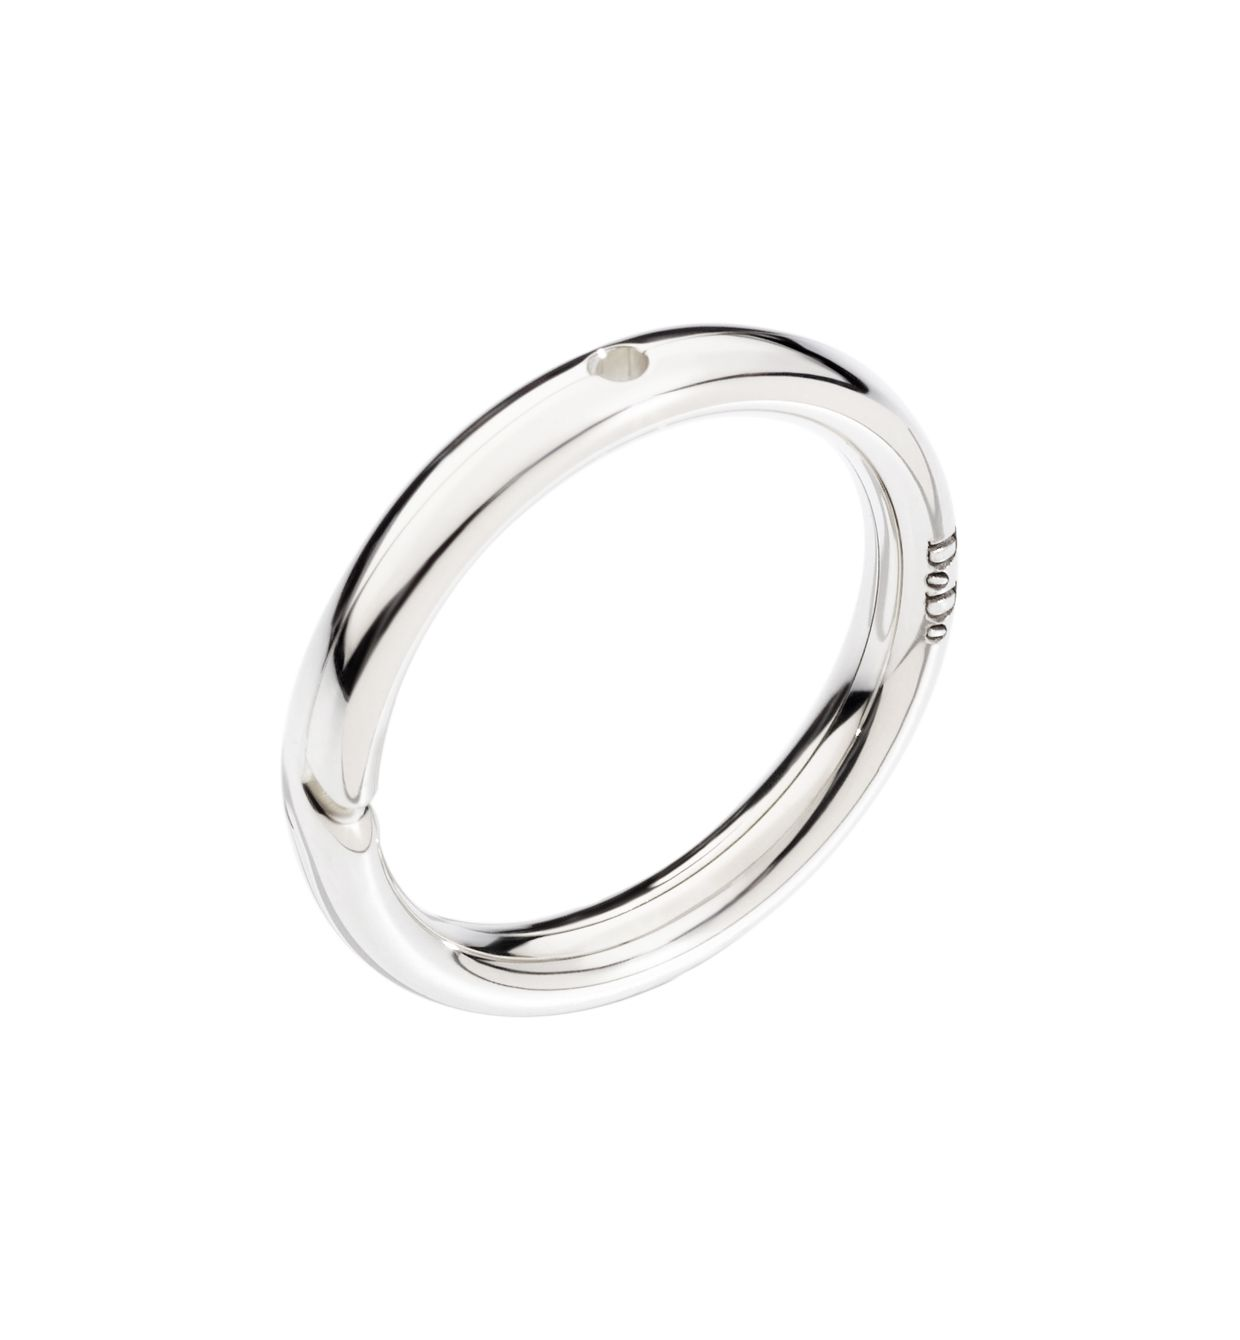 DoDo Brise Ring with Hole for Charm in 9k White Gold - Orsini Jewellers NZ